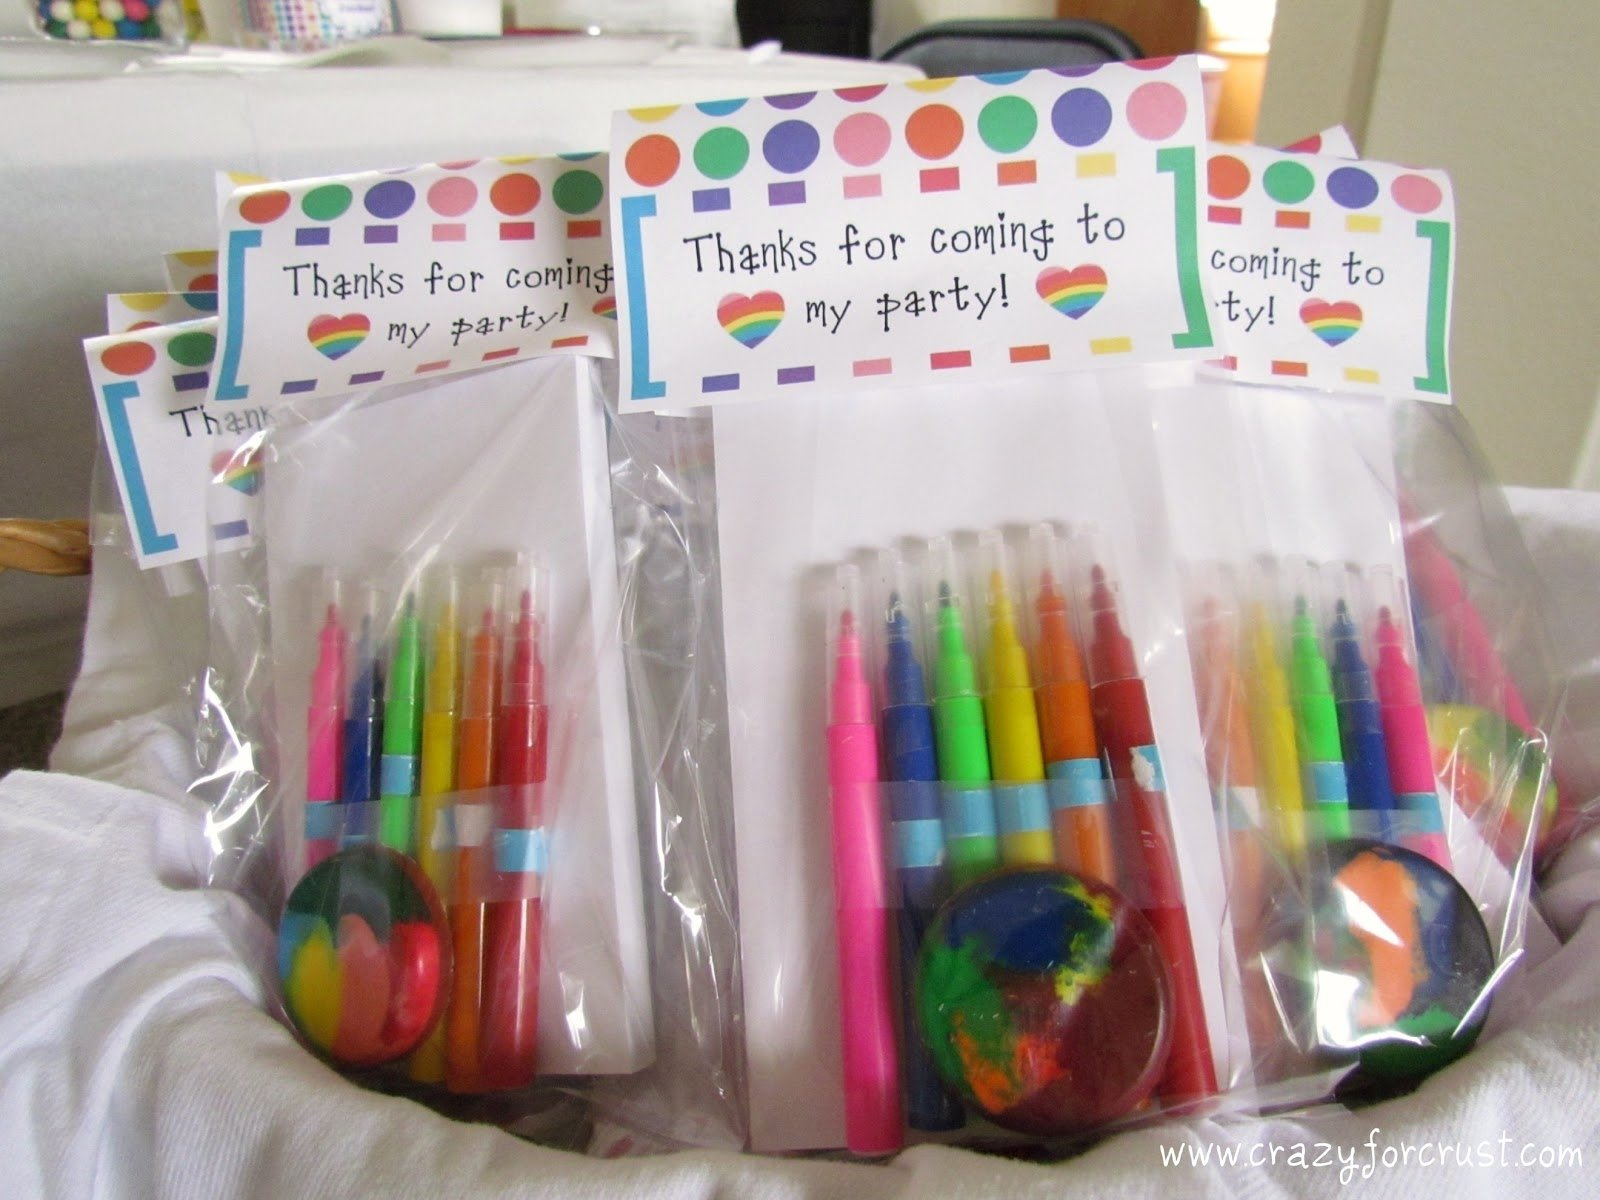 51 items for goody bags, happy birthday! 32 kids#039; goodie bags